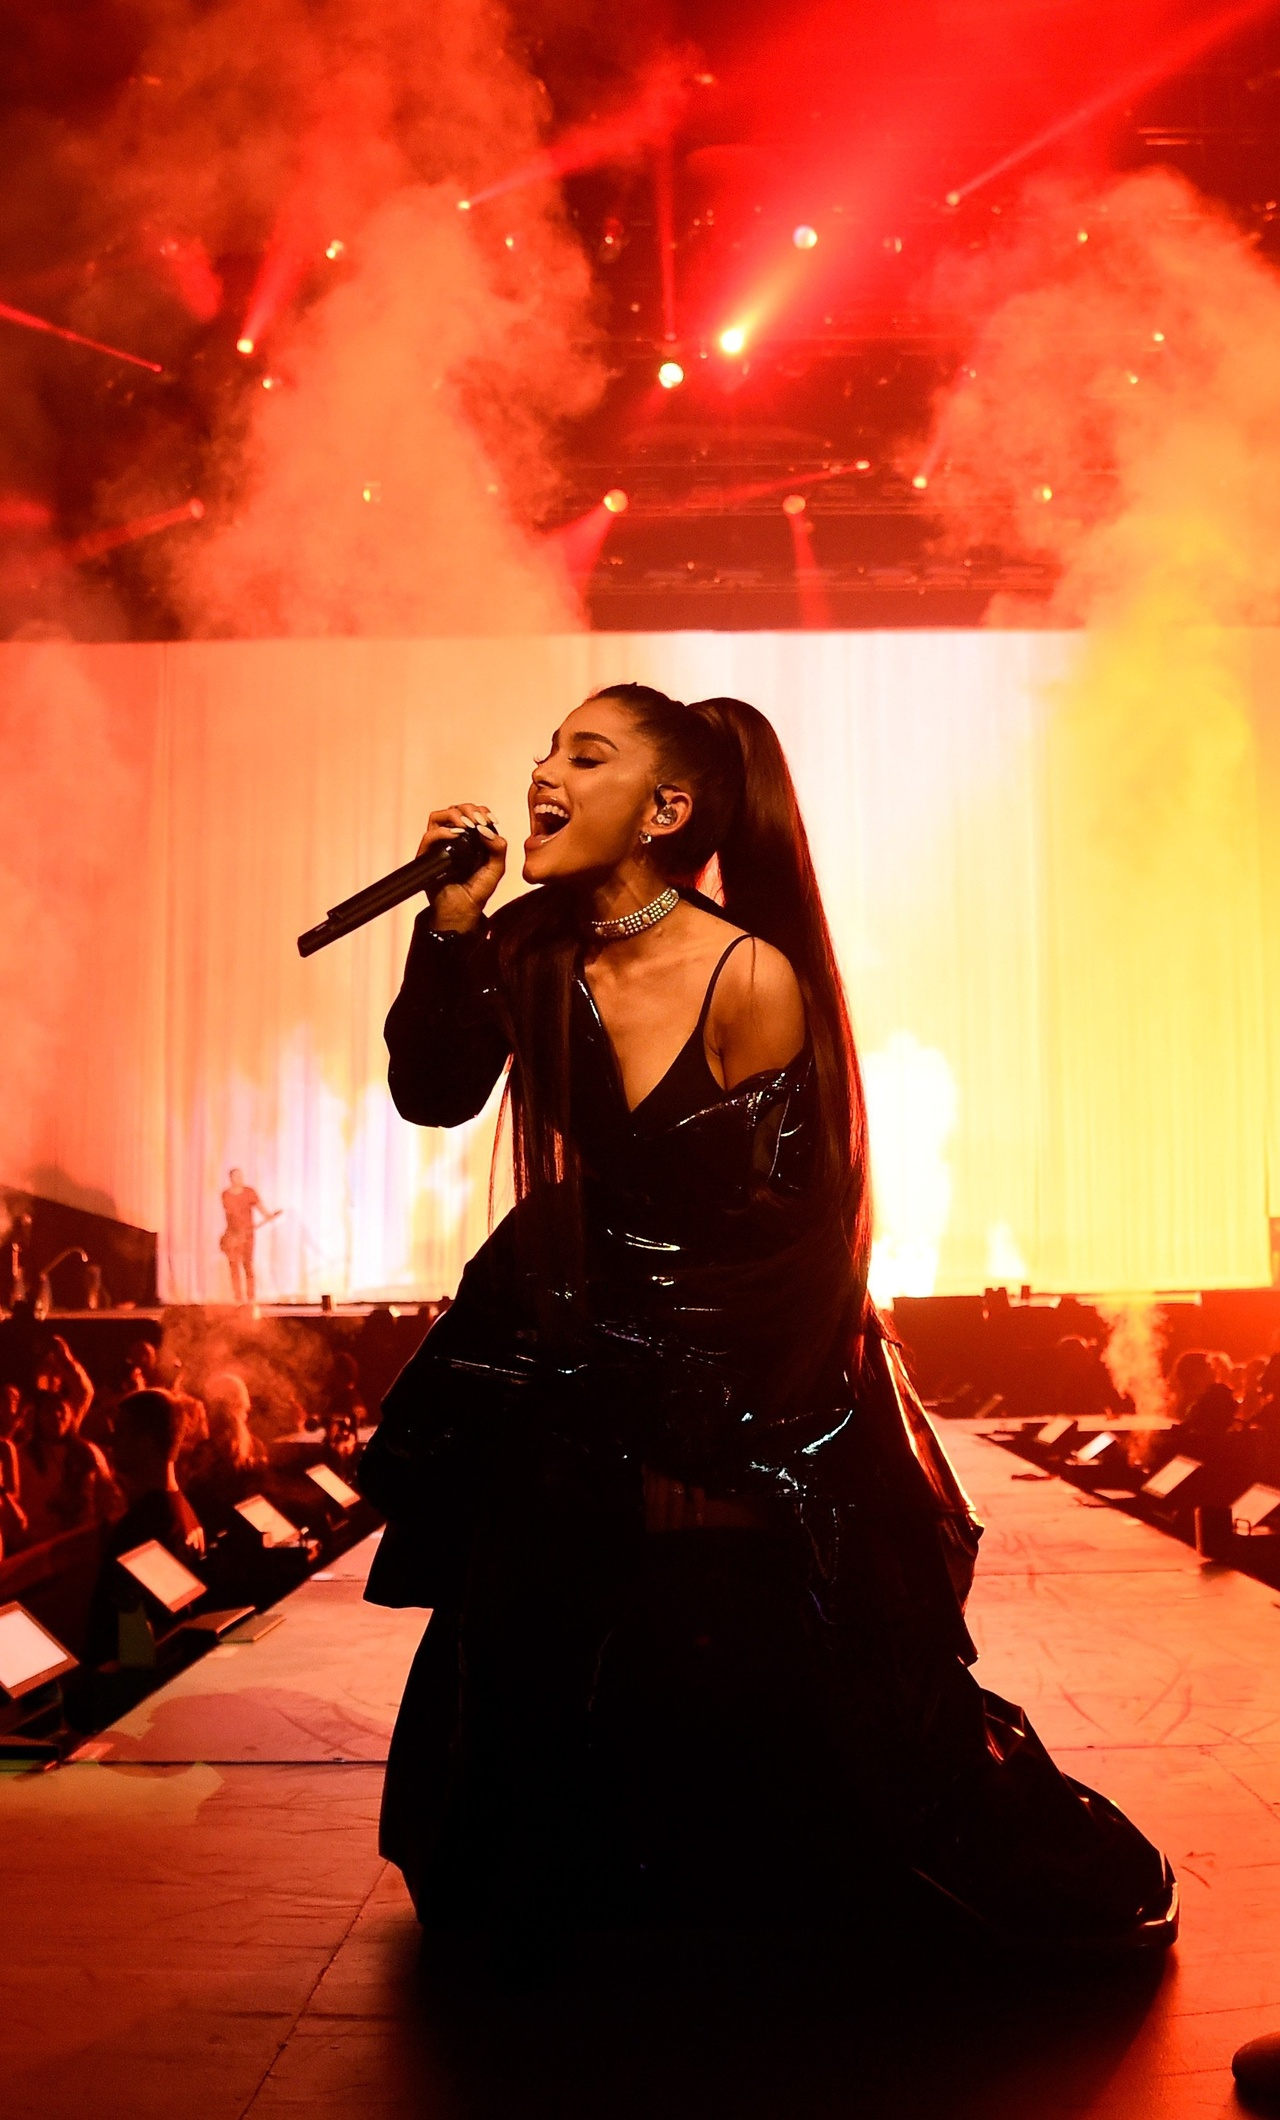 1280x2120 ariana grande live performance on stage iphone 6 hd 4k ariana grande live performance on stage 4kg voltagebd Image collections